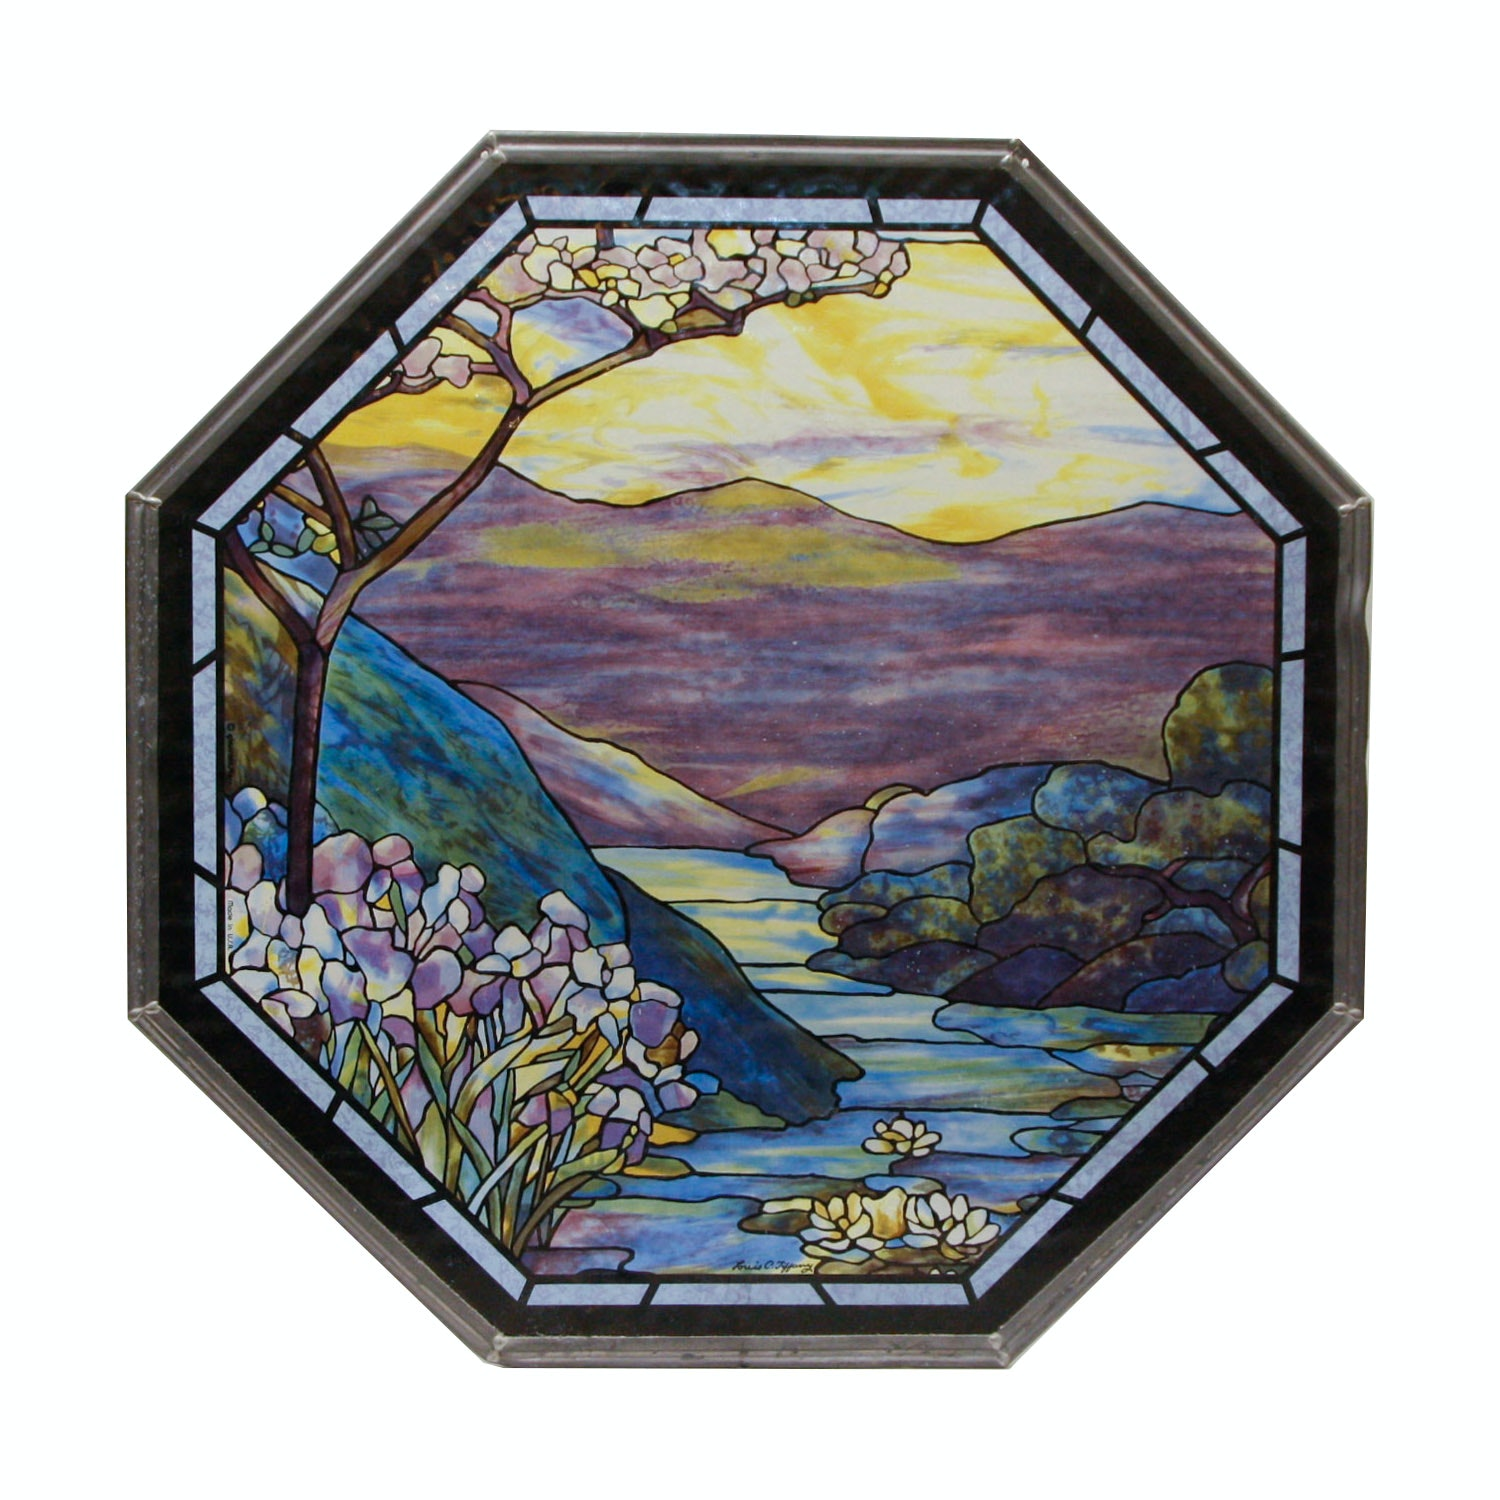 Reproduction Louis C. Tiffany Octagonal Panel